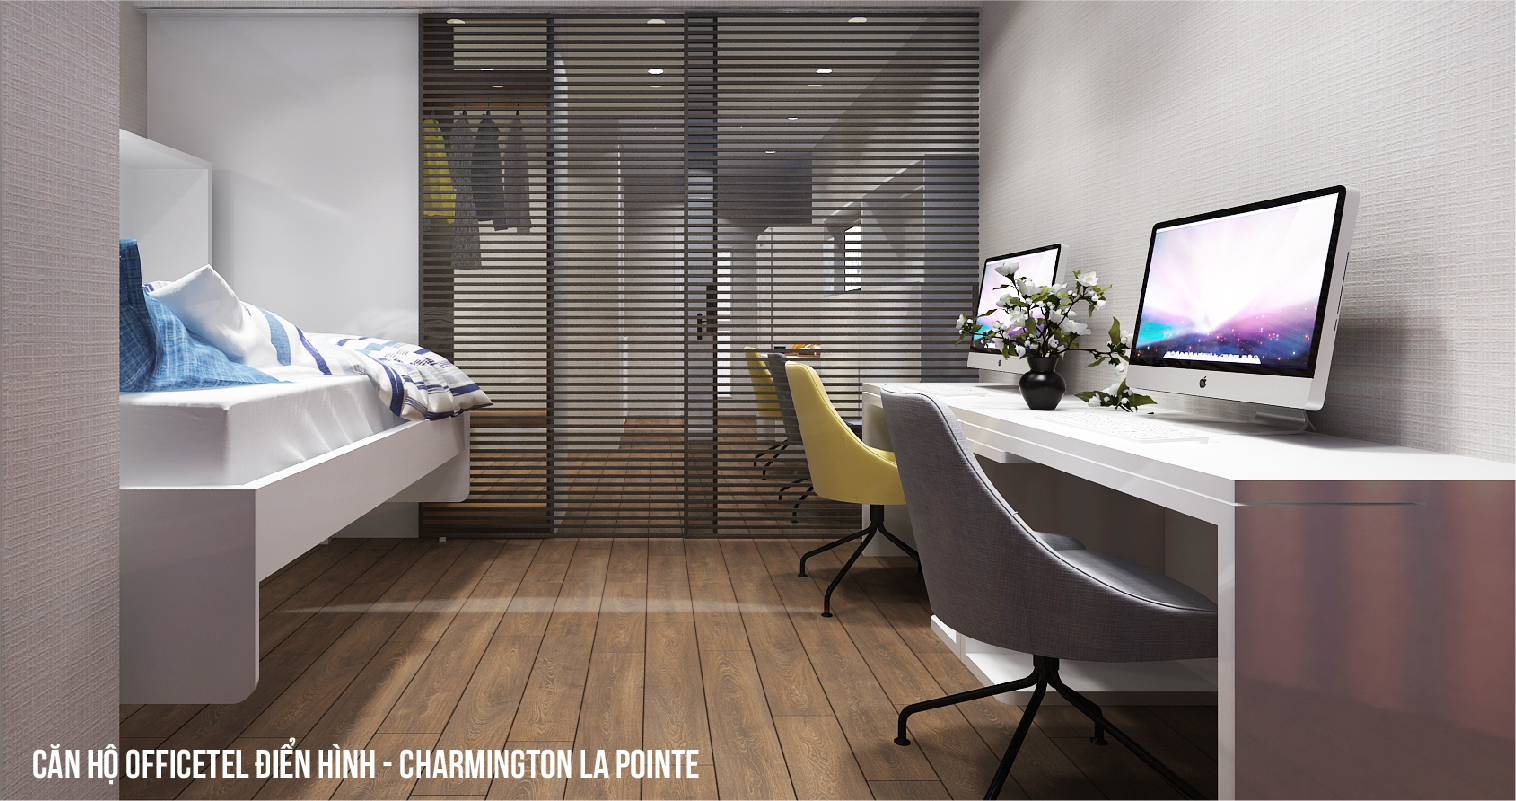 Căn hộ Officetel Charmington La Pointe 32